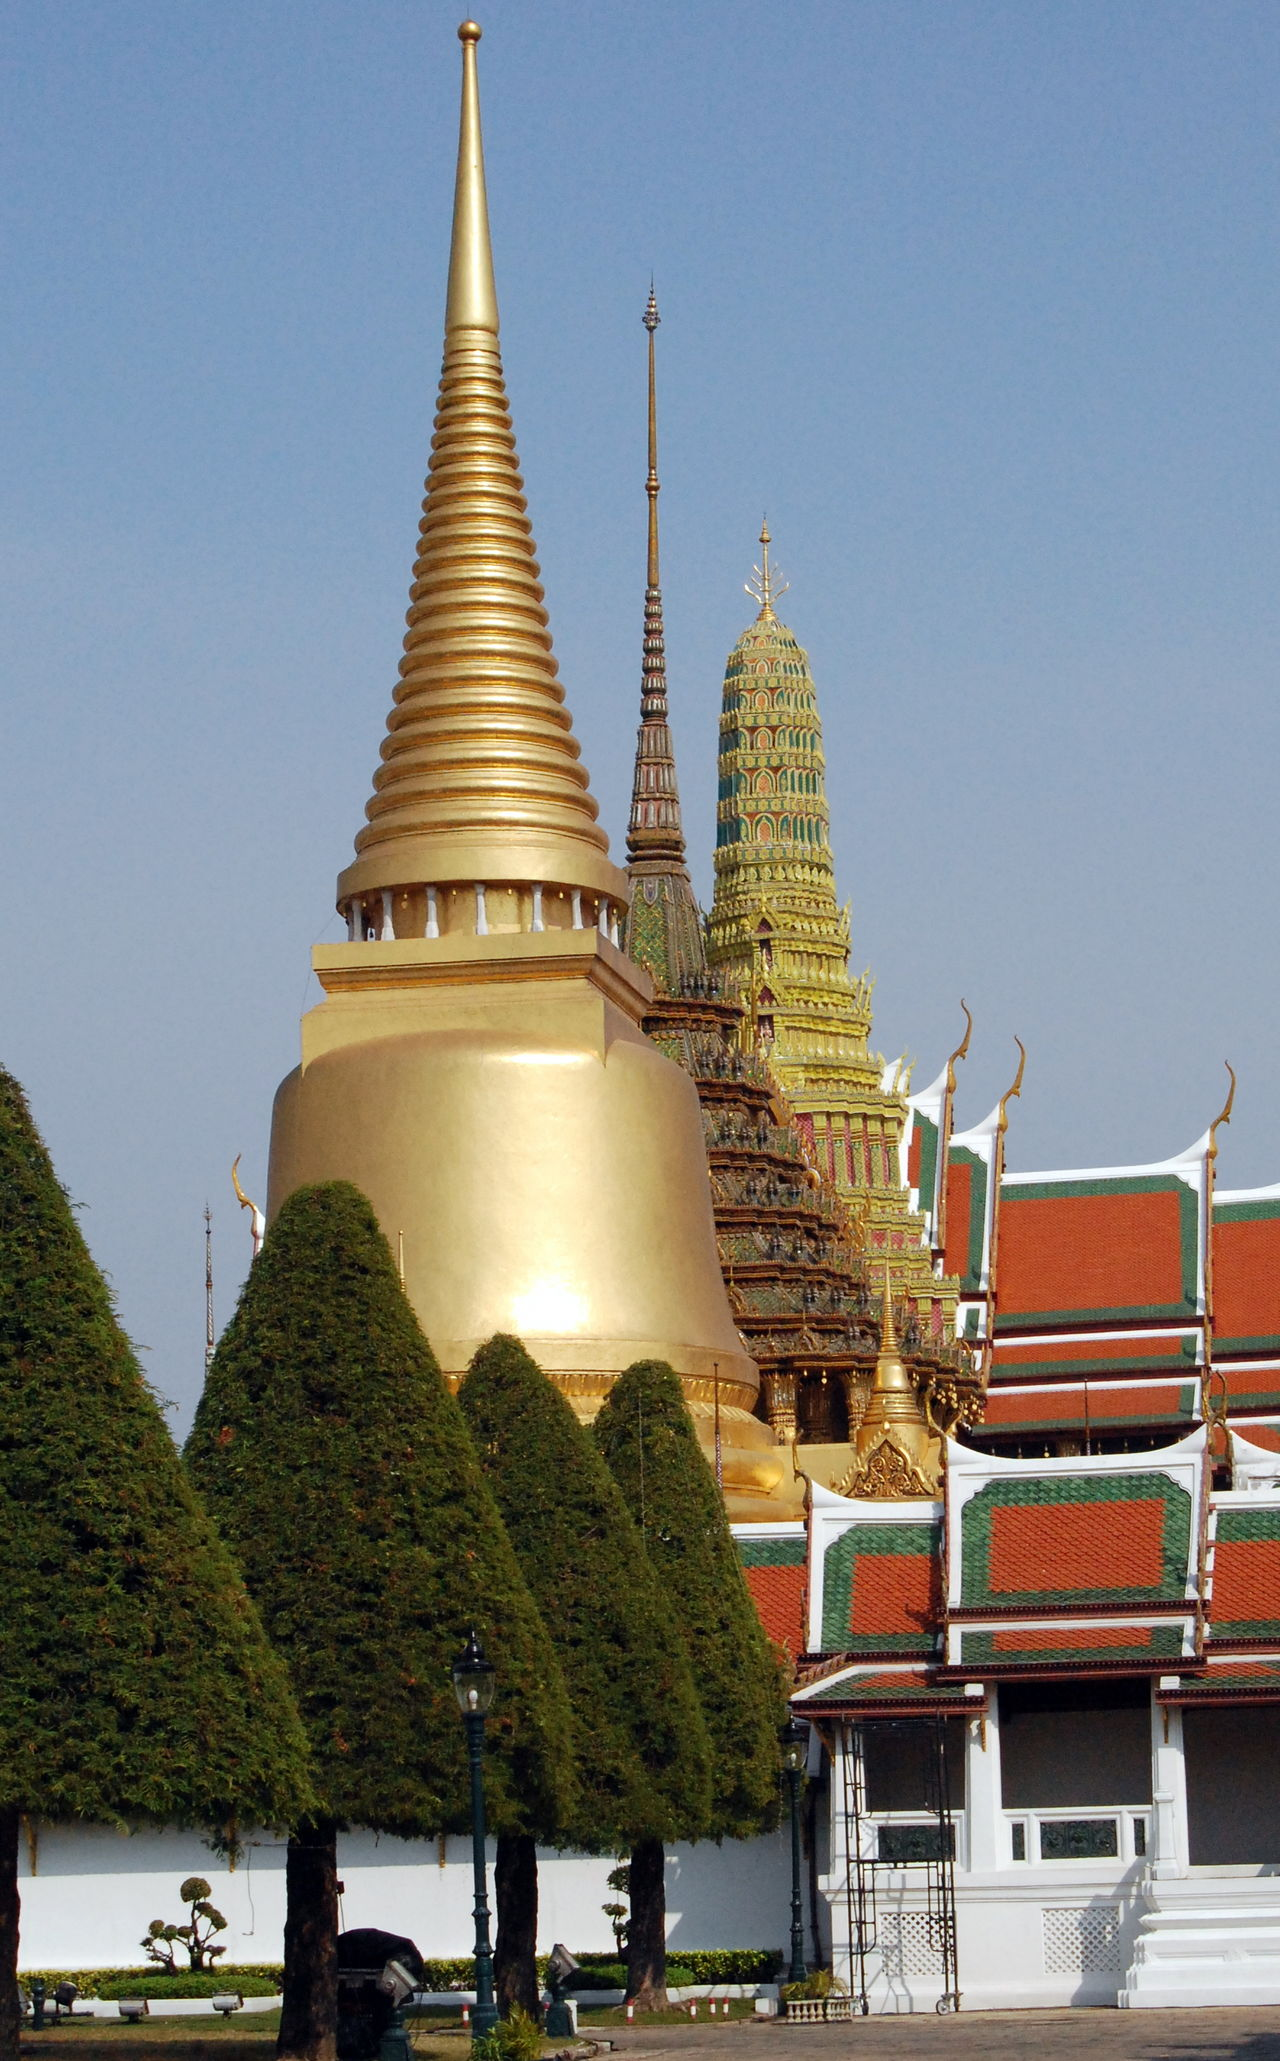 Architecture Bangkok Bangkok Thailand. Building Exterior Built Structure Clear Sky Day Gold Colored Grand Palace Grand Palace Bangkok Thailand No People Outdoors Pagoda Place Of Worship Religion Sky Spirituality Travel Destinations Tree